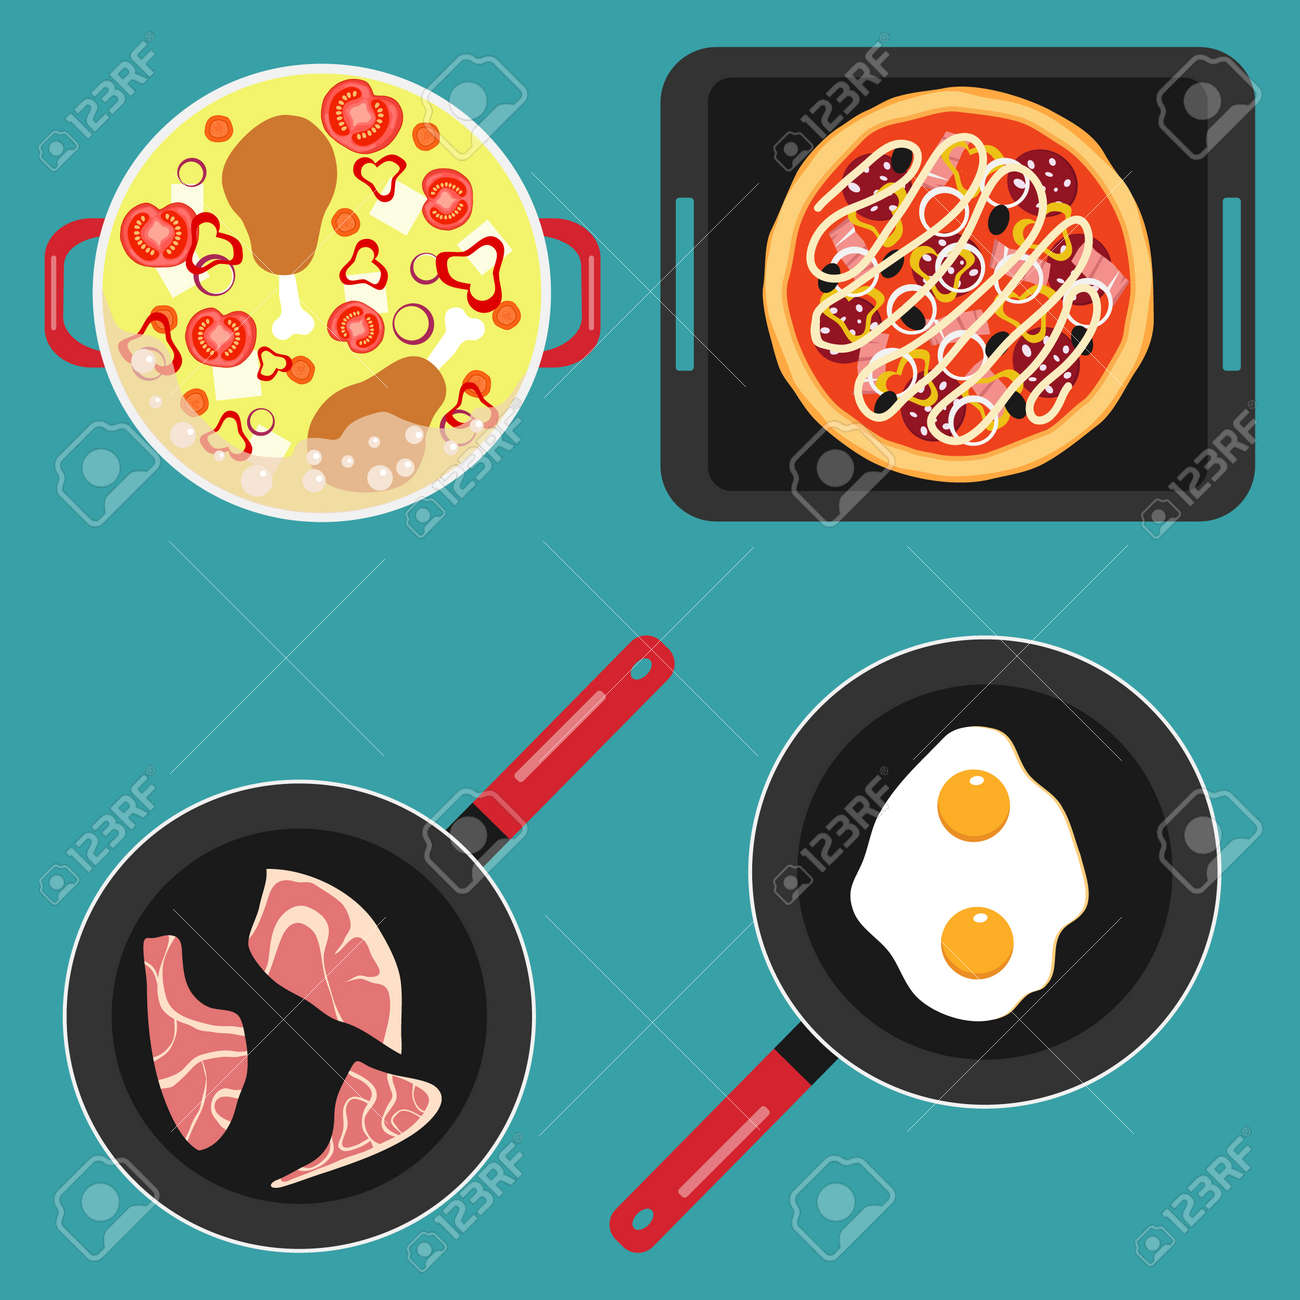 Cooking food, pots and pans with cooked food, soup, fried meat, scrambled eggs. Vector illustration. Vector. - 167578772